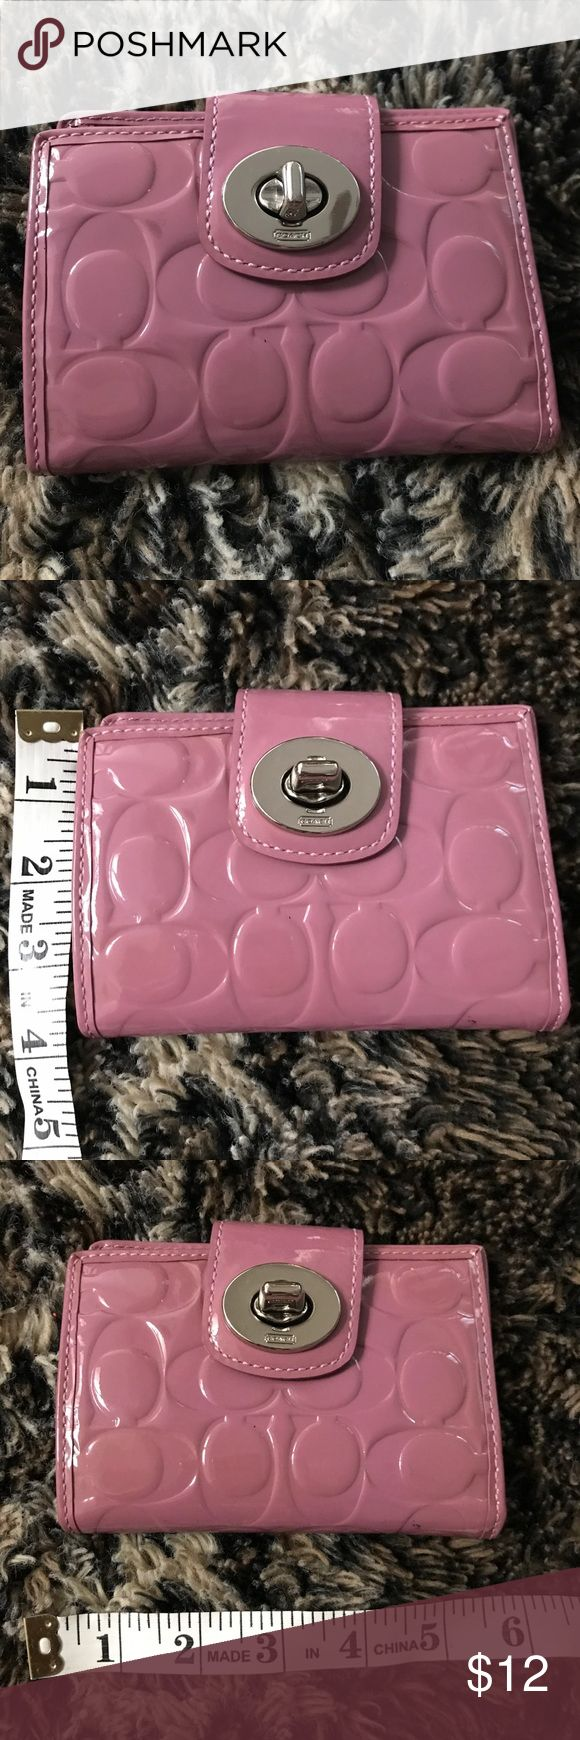 Coach bi fold wallet Patent light purple colored bi fold wallet from Coach. Leather inside. Slot for I.D. with multiple credit card slots. Zipped coin pouch on opposite side. Turn lock closure. Has minor signs of wear, otherwise clean inside. Coach Bags Wallets